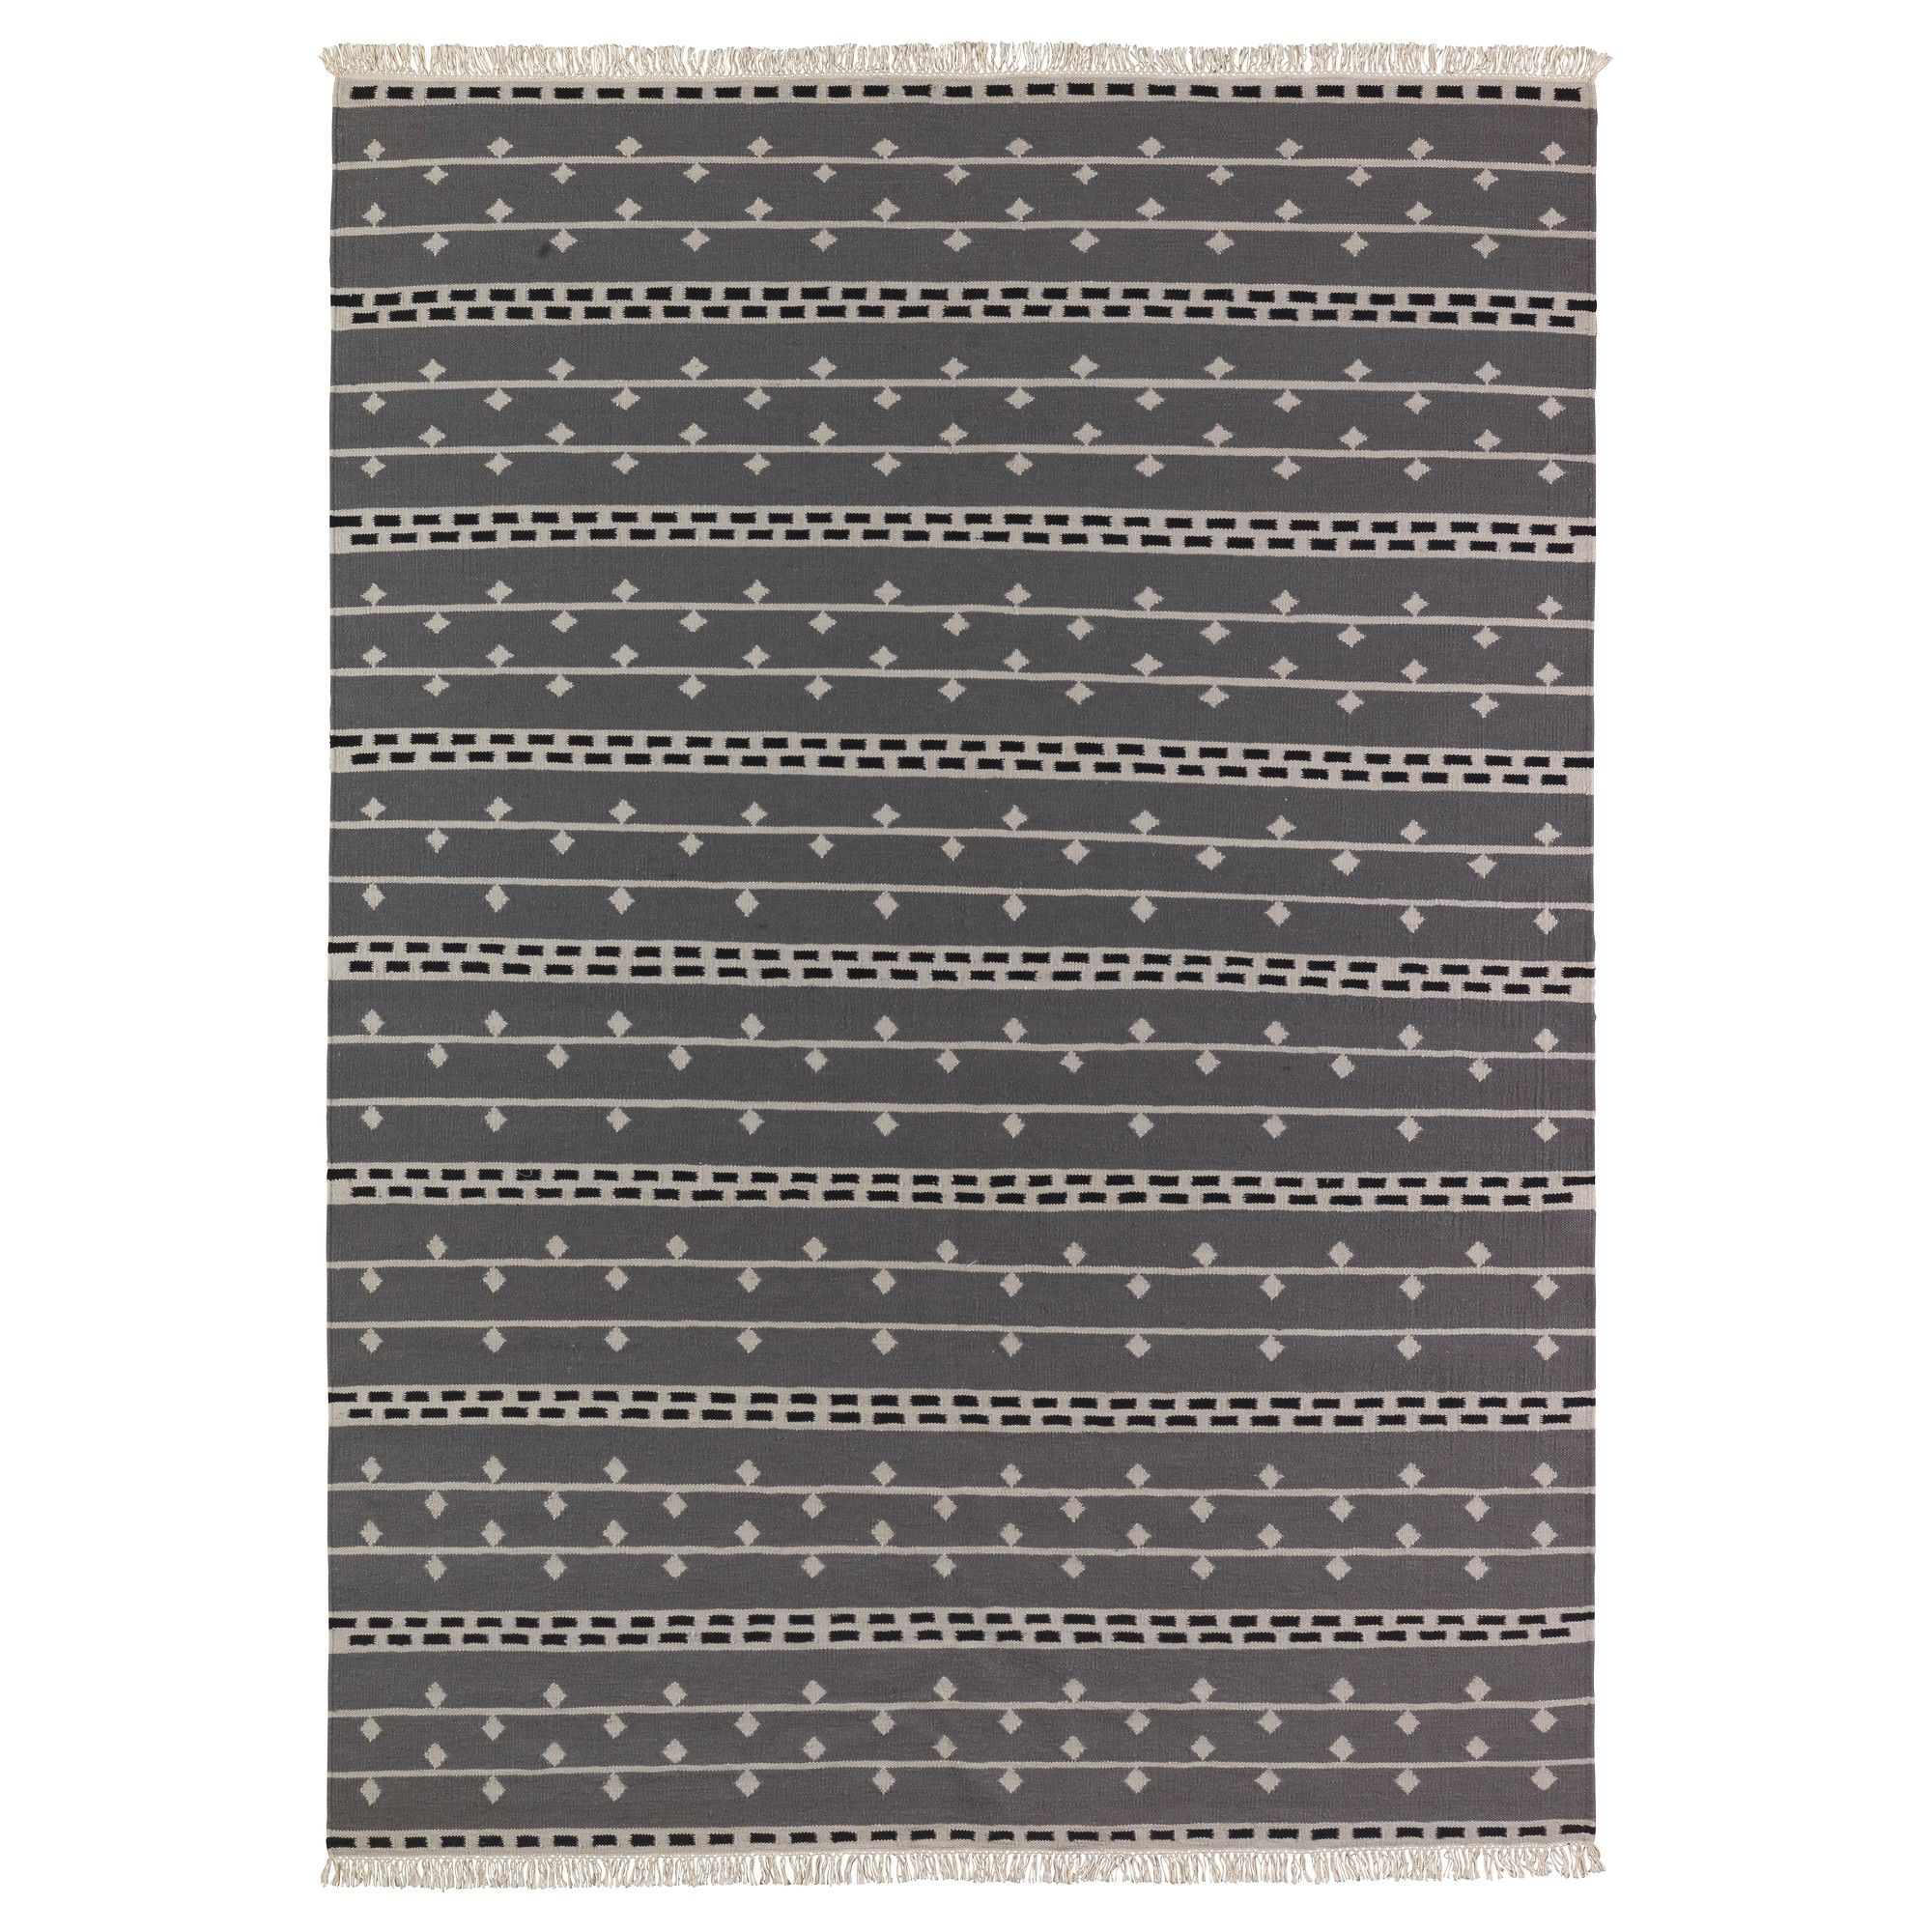 Alvine Rand Rug Flatwoven Gray White Black 199 00